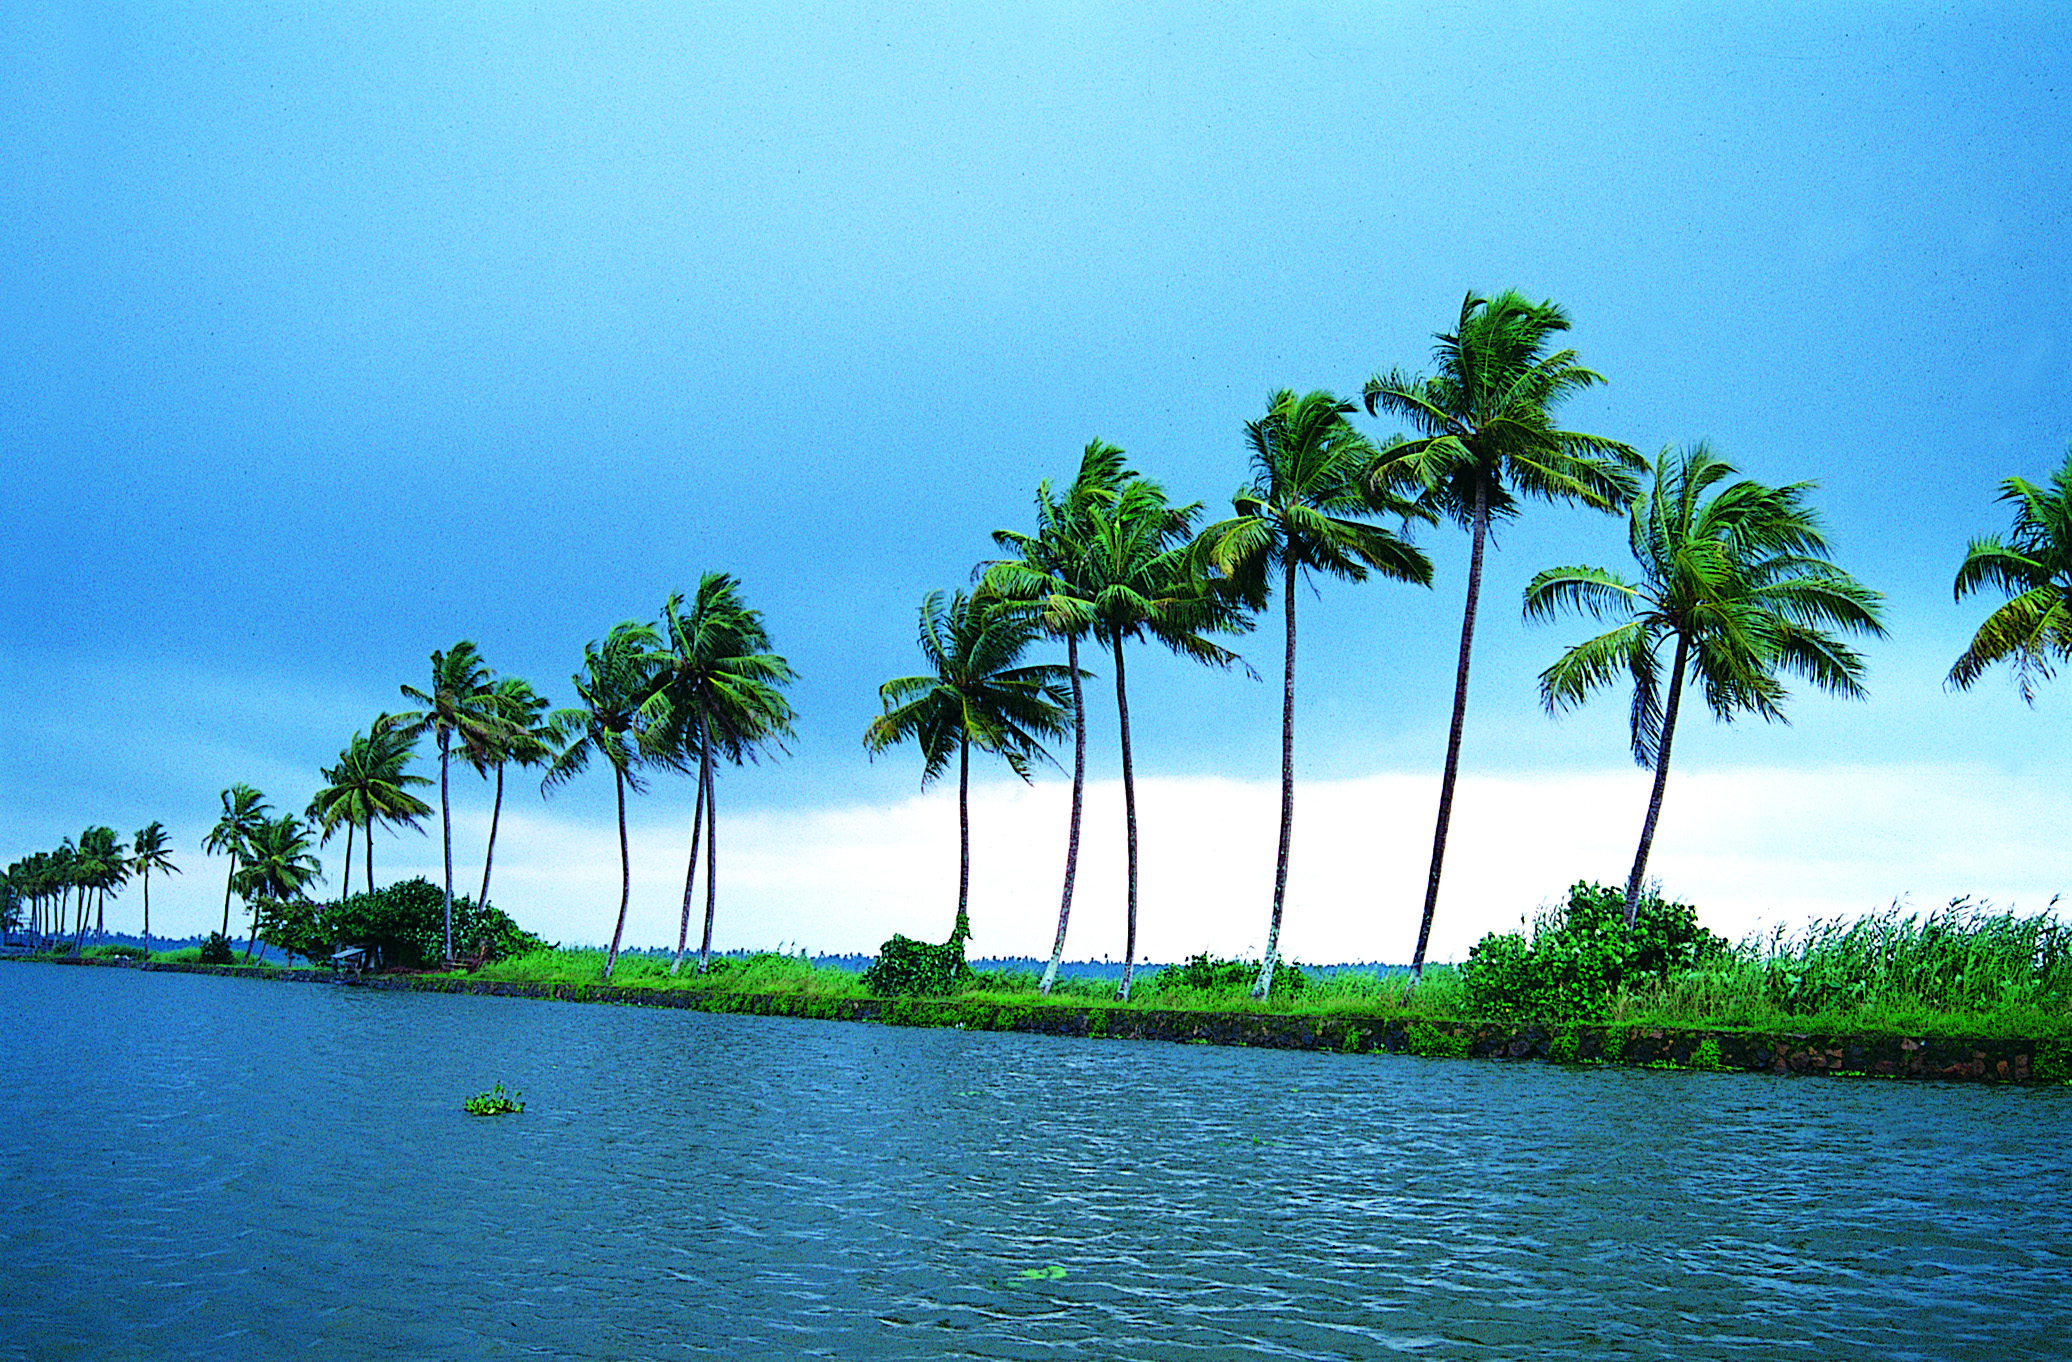 Kerala - General Image